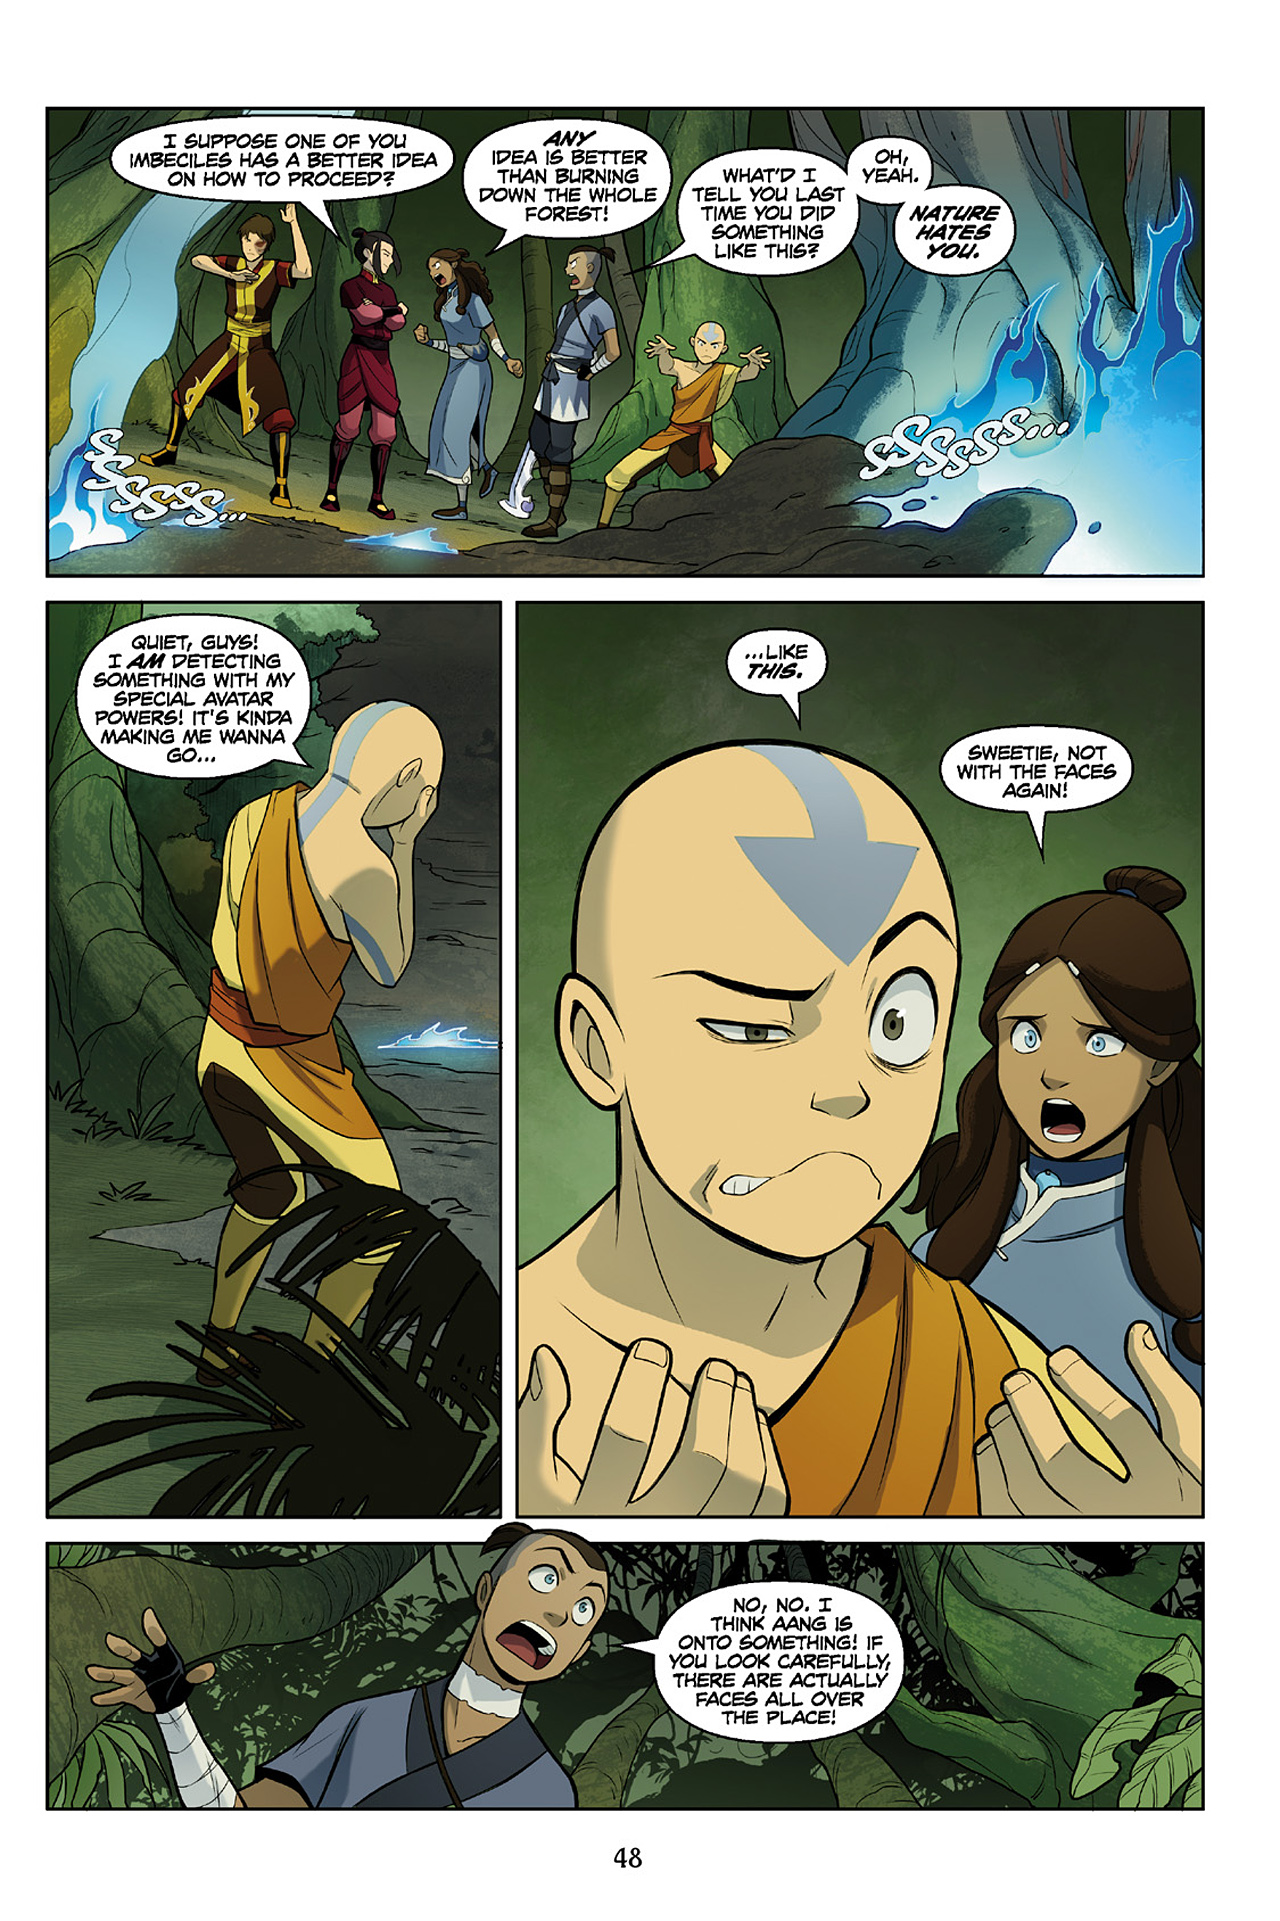 Read online Nickelodeon Avatar: The Last Airbender - The Search comic -  Issue # Part 2 - 49